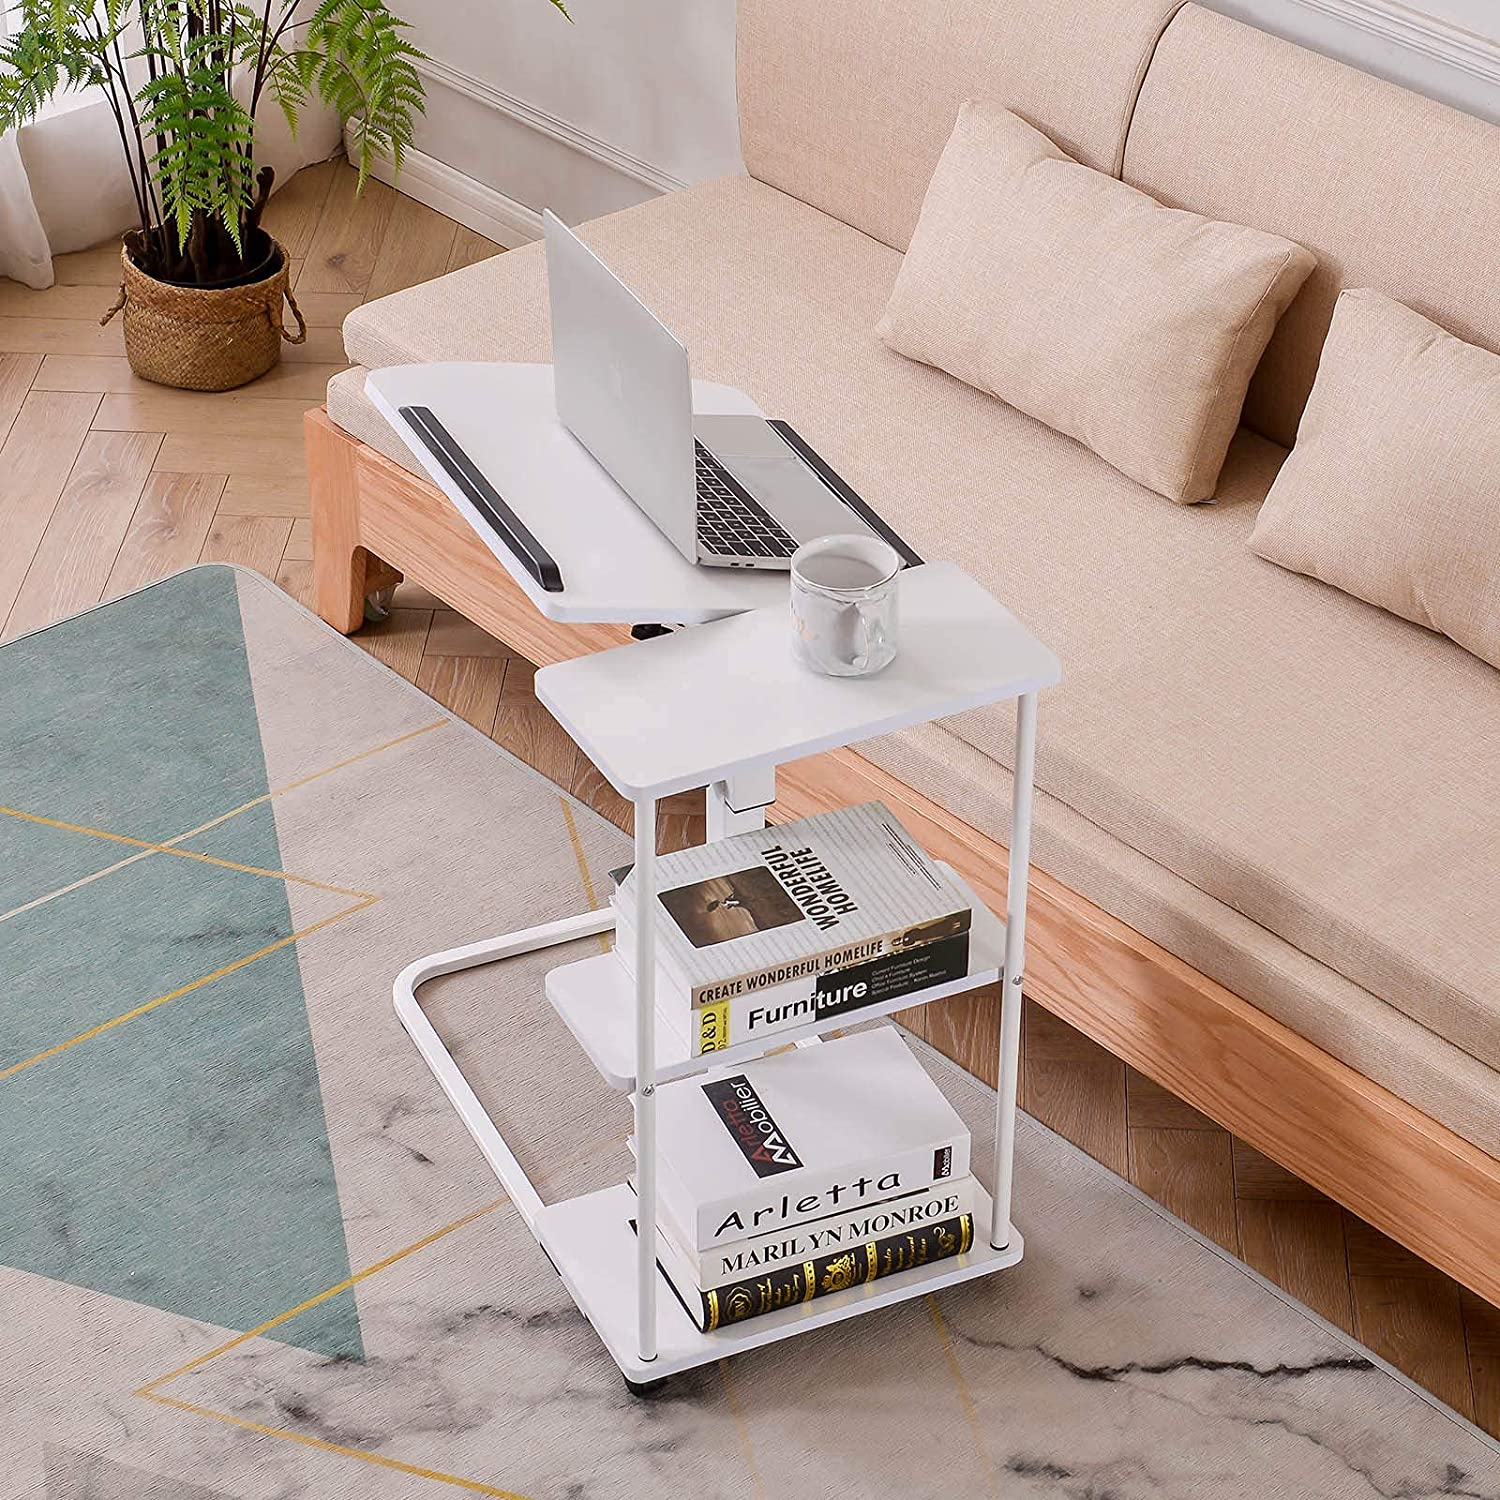 Natwind C-Shaped End Table with Storage Shelves Side Table on Wheels Height Adjustable Couch Table with Storage End Tables for Small Spaces Mobile Sofa Storage Table White